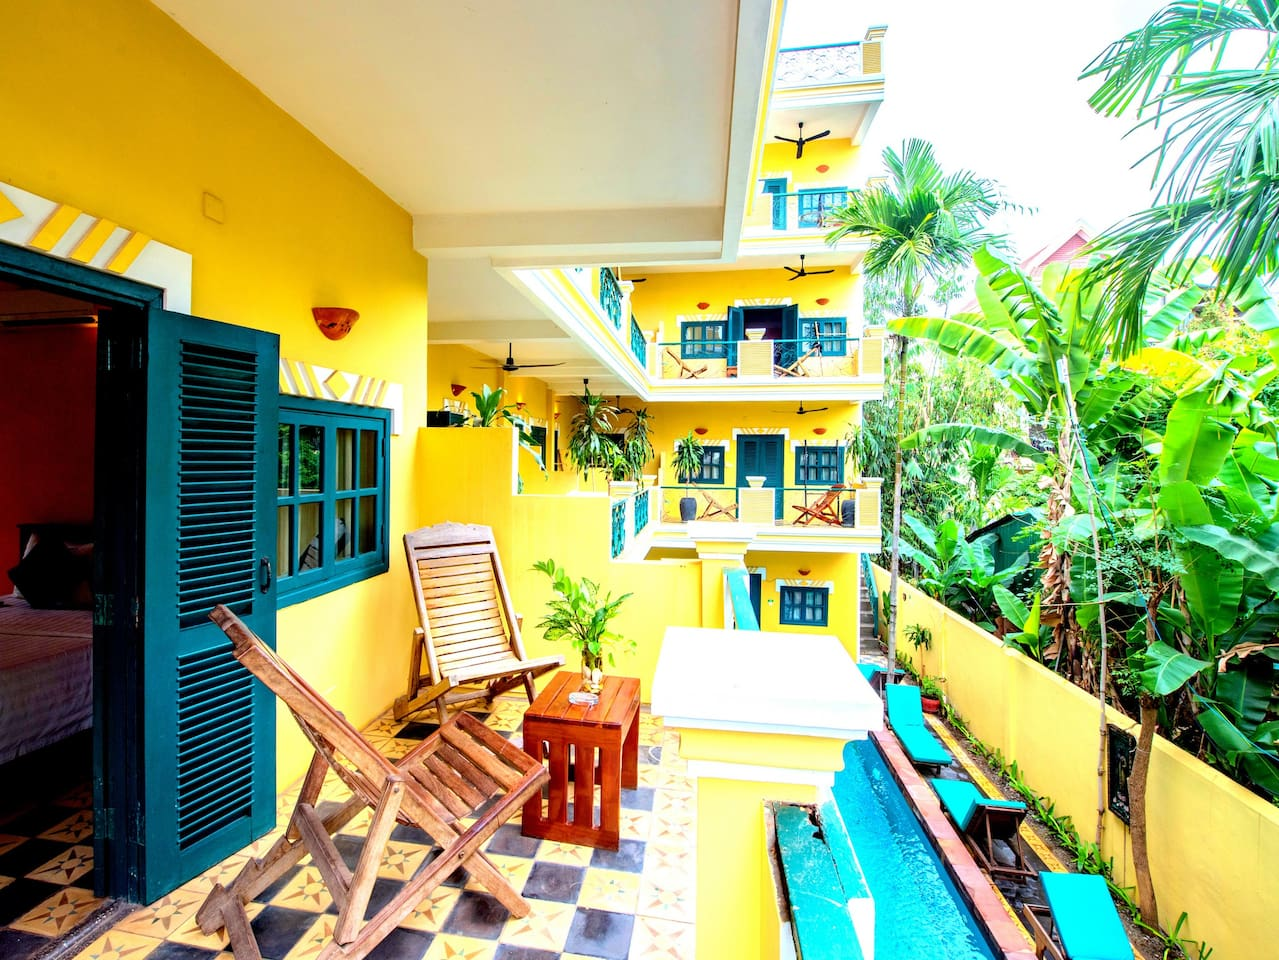 Balcony facing to the pool